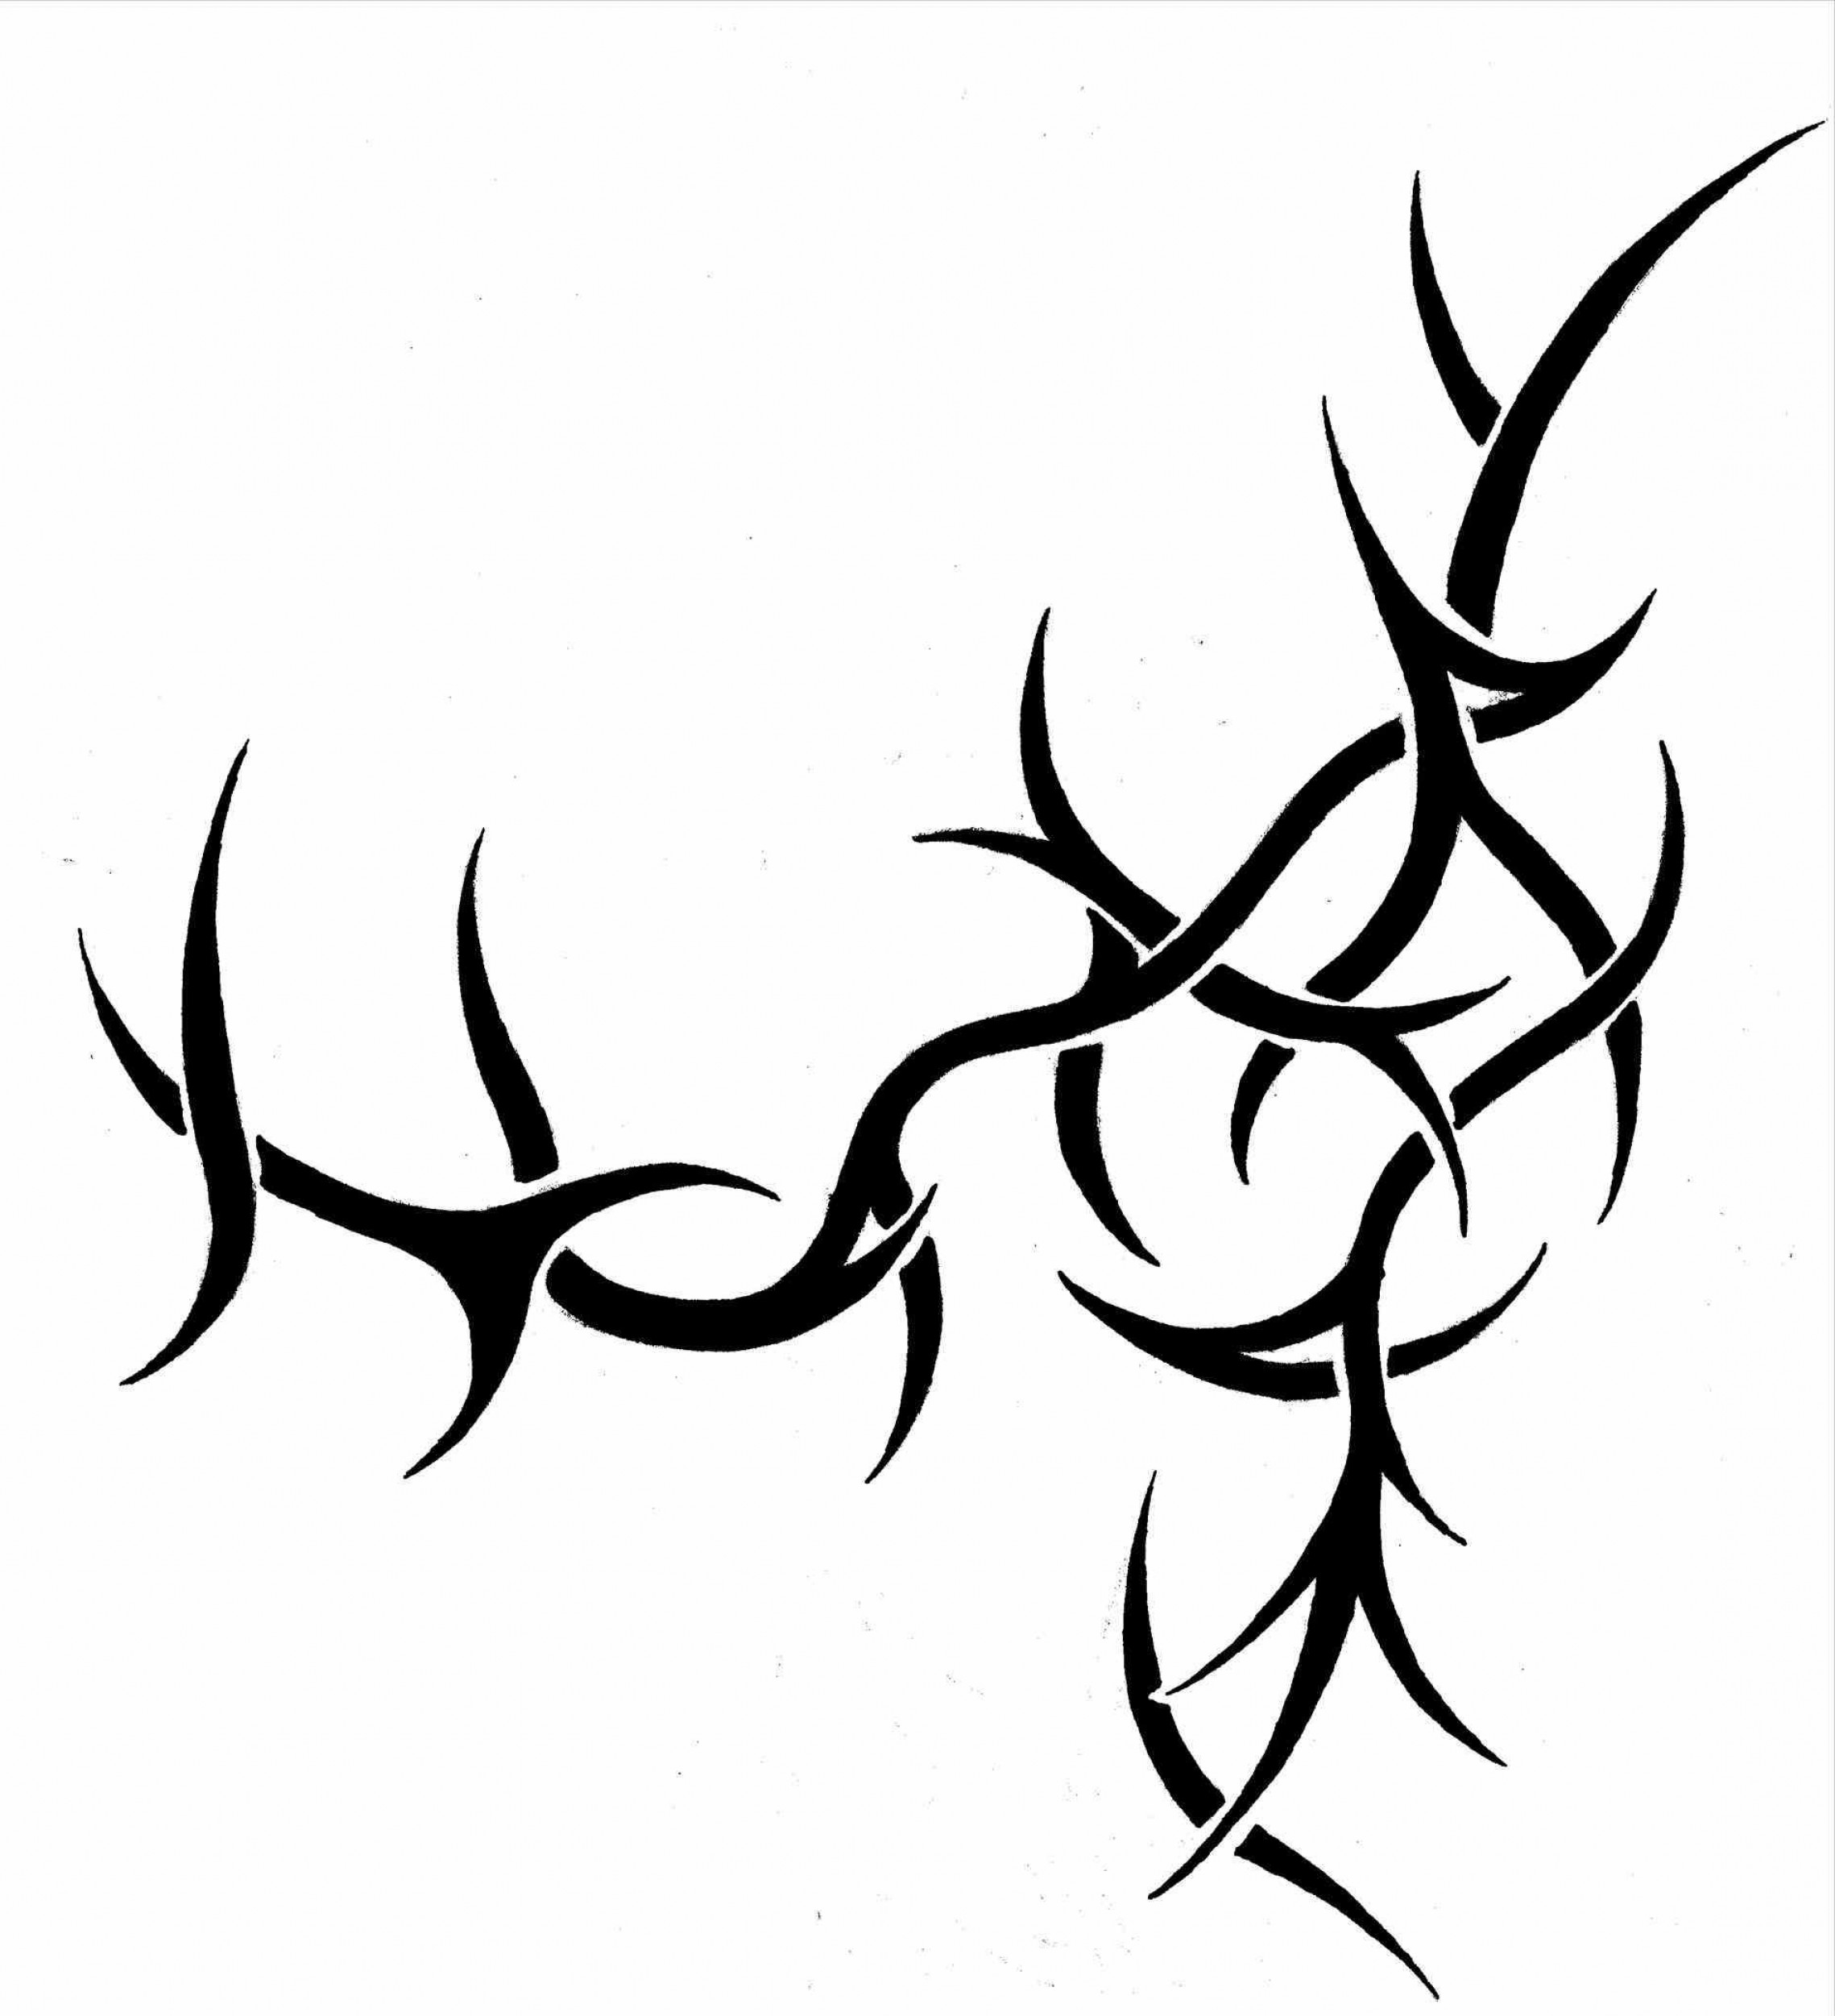 Thorn vine clipart image library library Thorn Vine Drawing at PaintingValley.com | Explore ... image library library